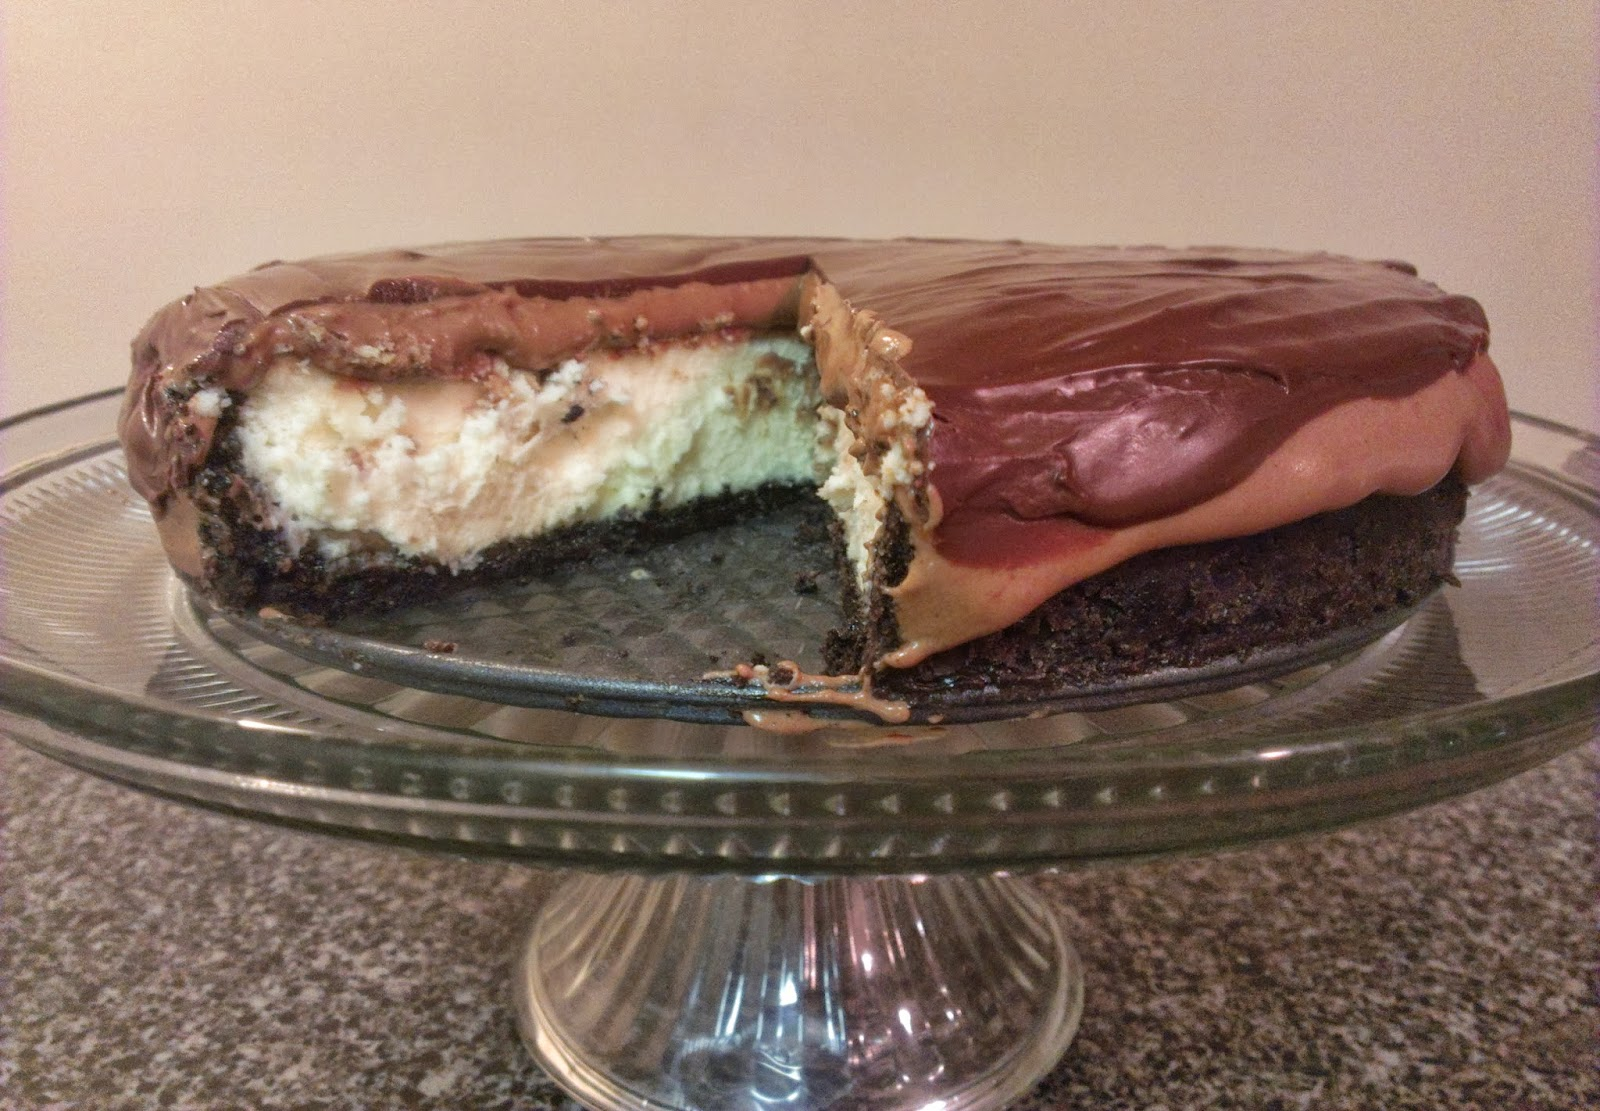 The Hungry Hood: Chocolate Mousse Cheesecake